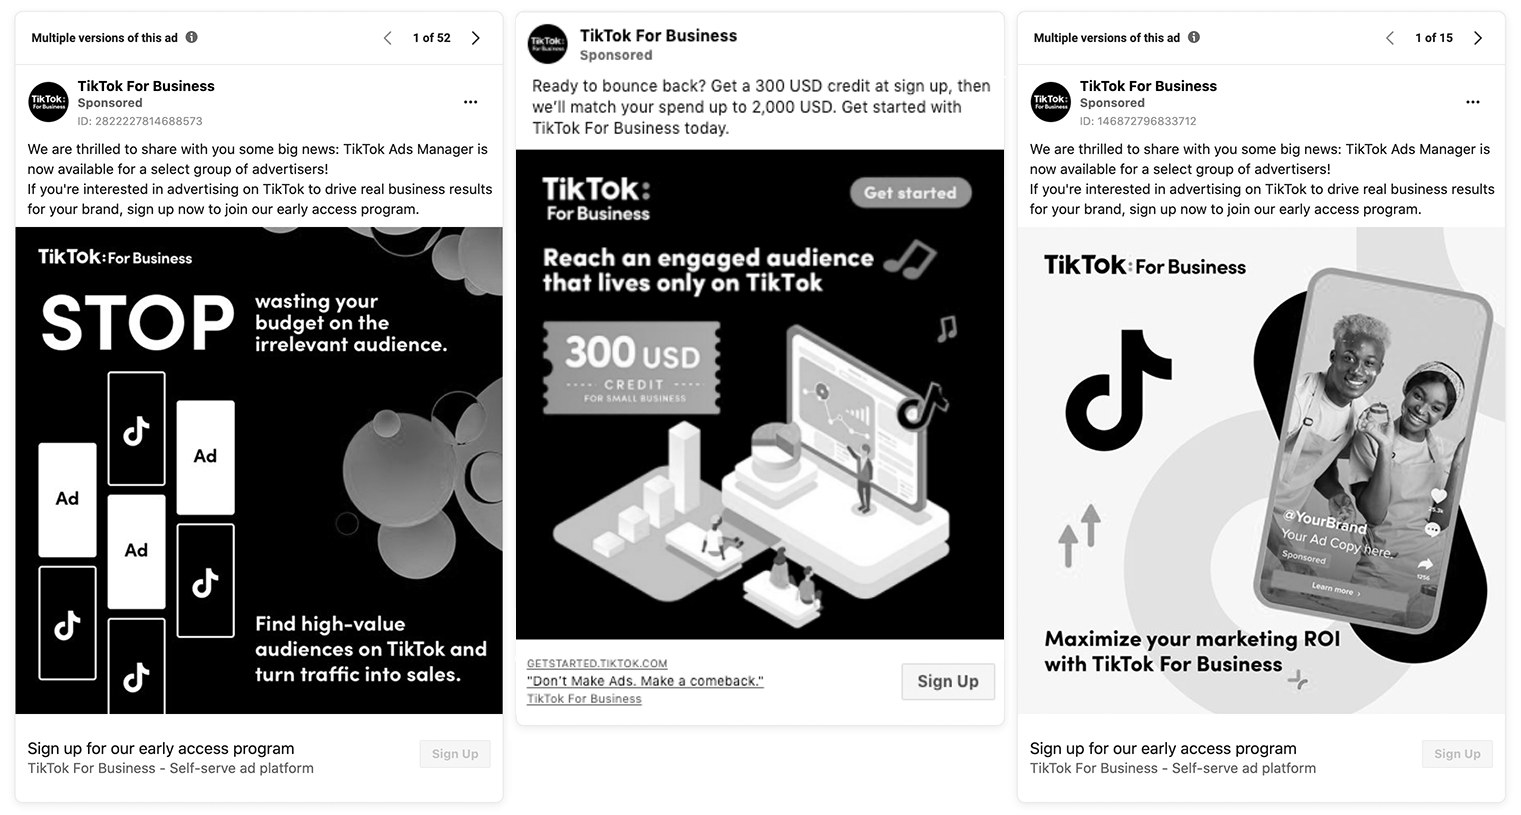 """TikTok for Business"" ads on Facebook"